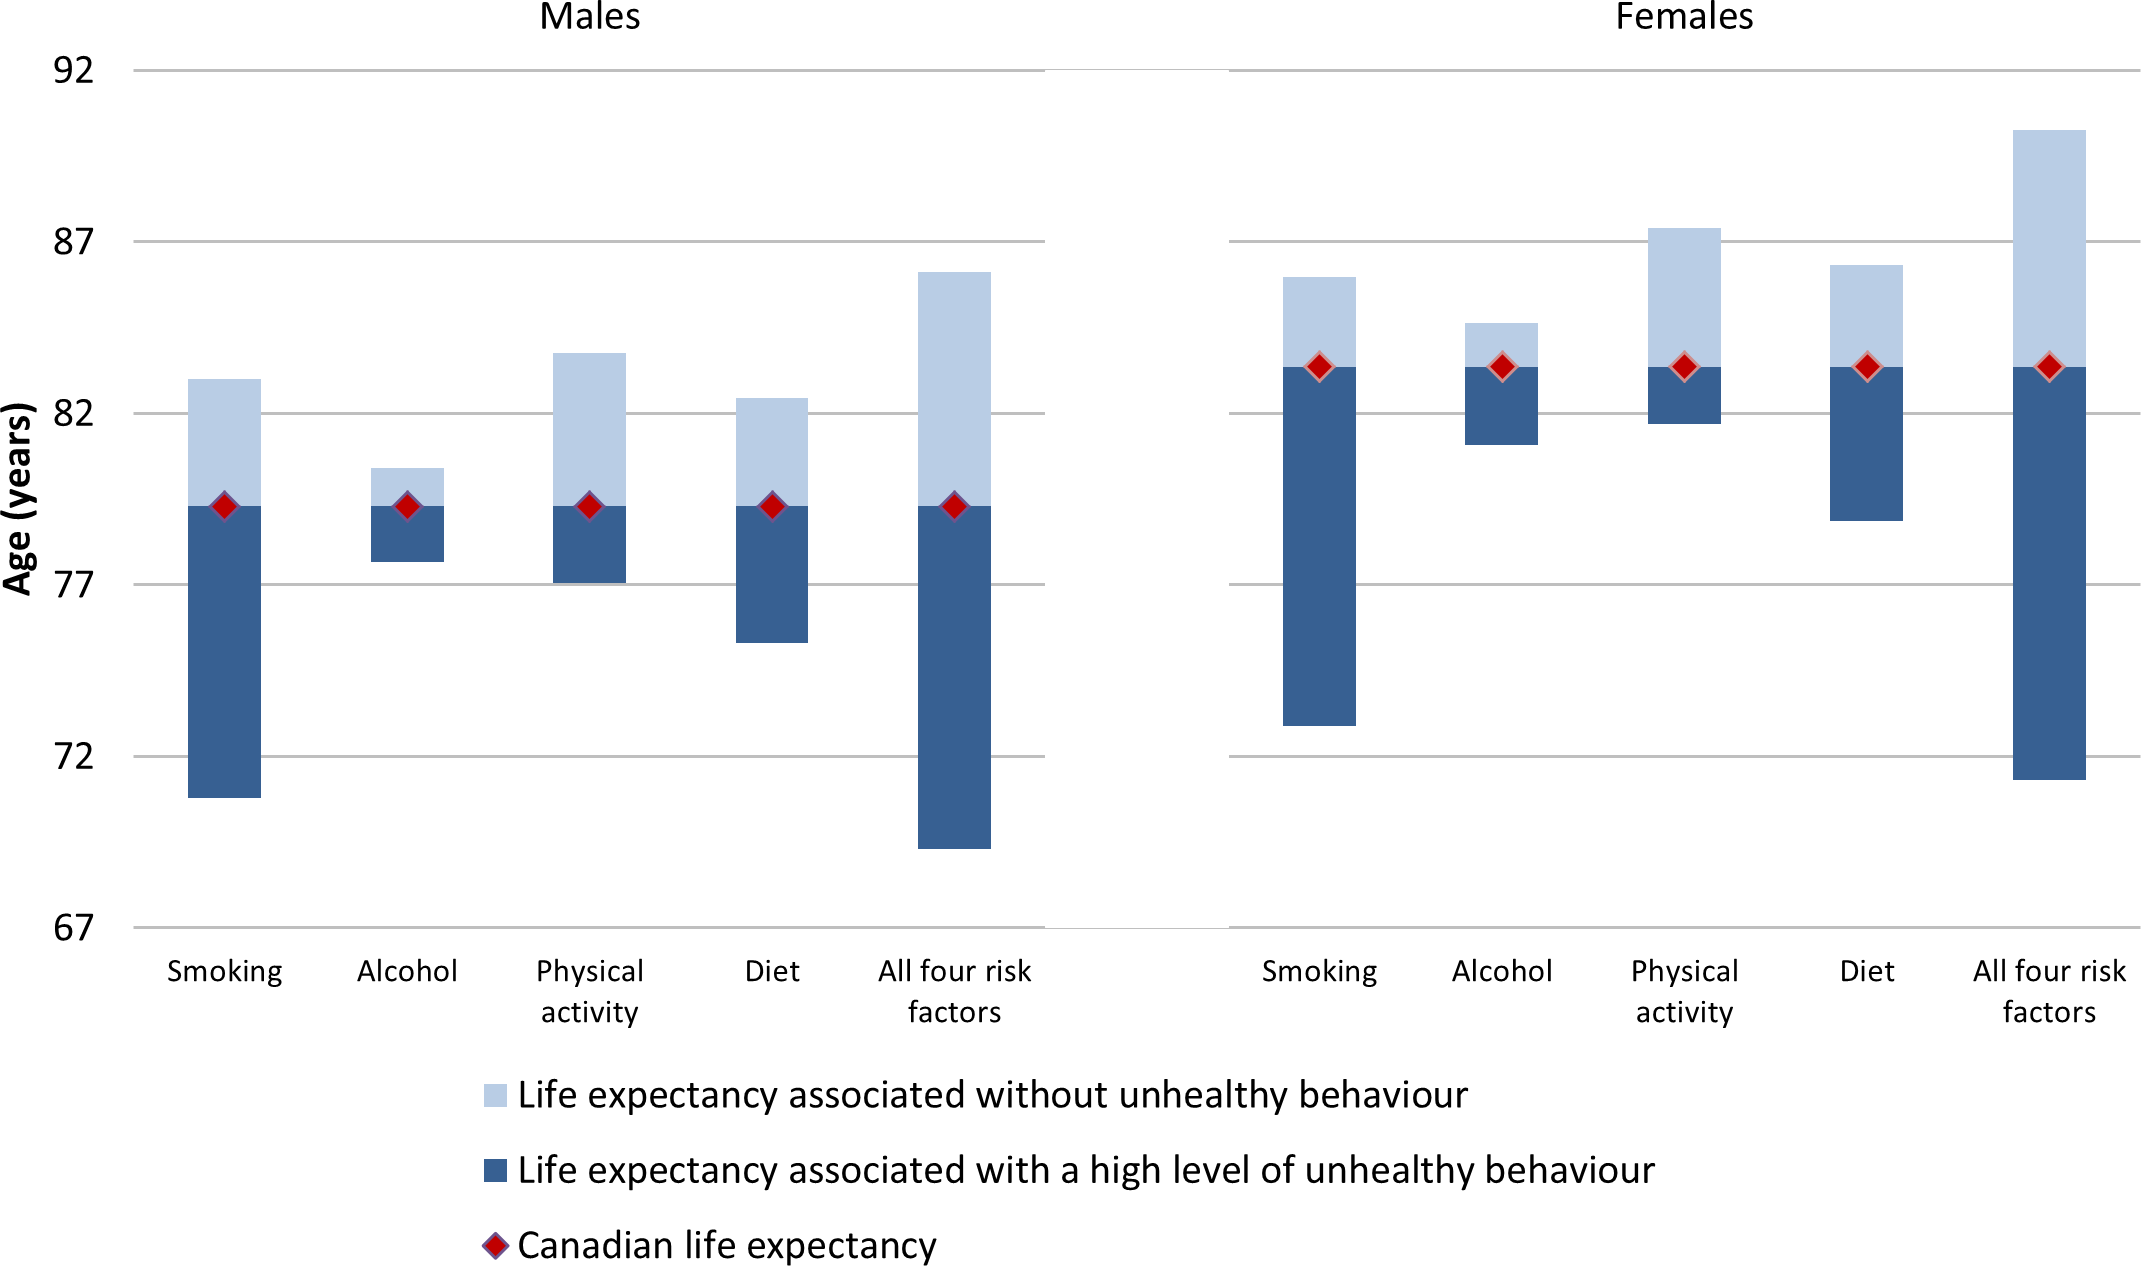 Life expectancy for Canadians aged 20 and older associated with healthy versus high level of unhealthy exposure for selected behaviours, relative to average Canadian life expectancy, 2010.